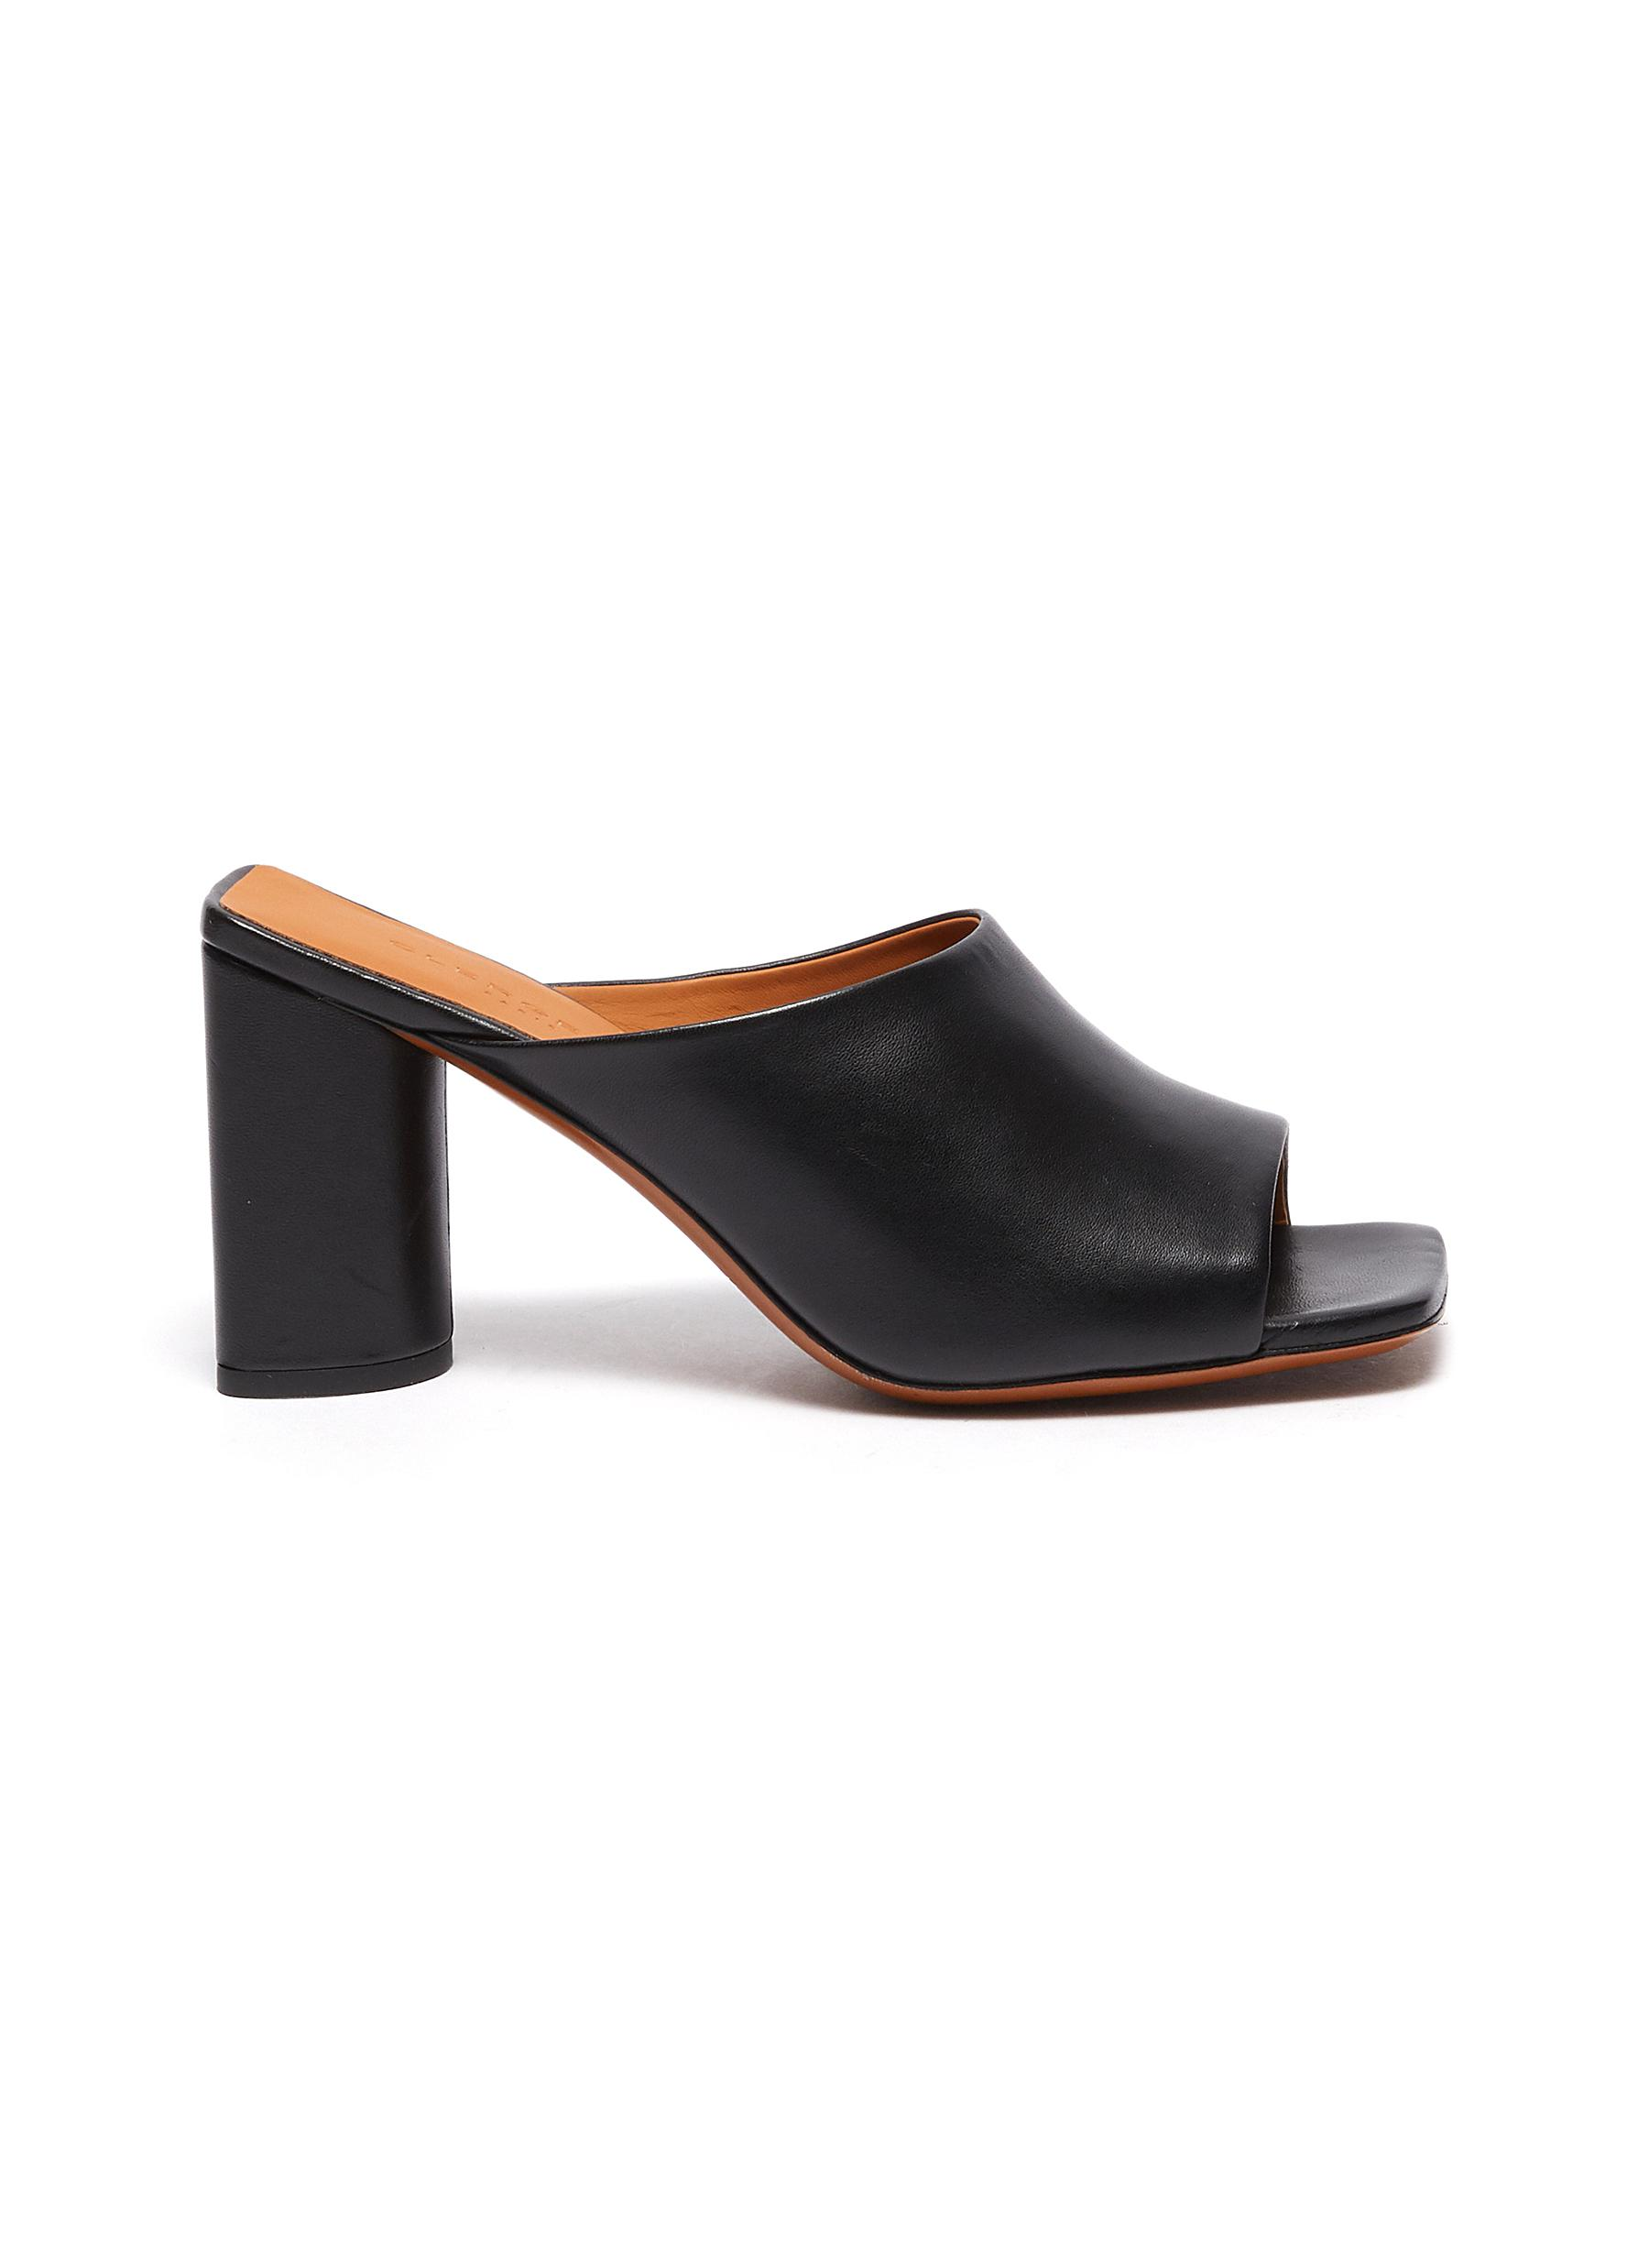 Clergerie 'JODIE' HEELED LAMBSKIN LEATHER MULES